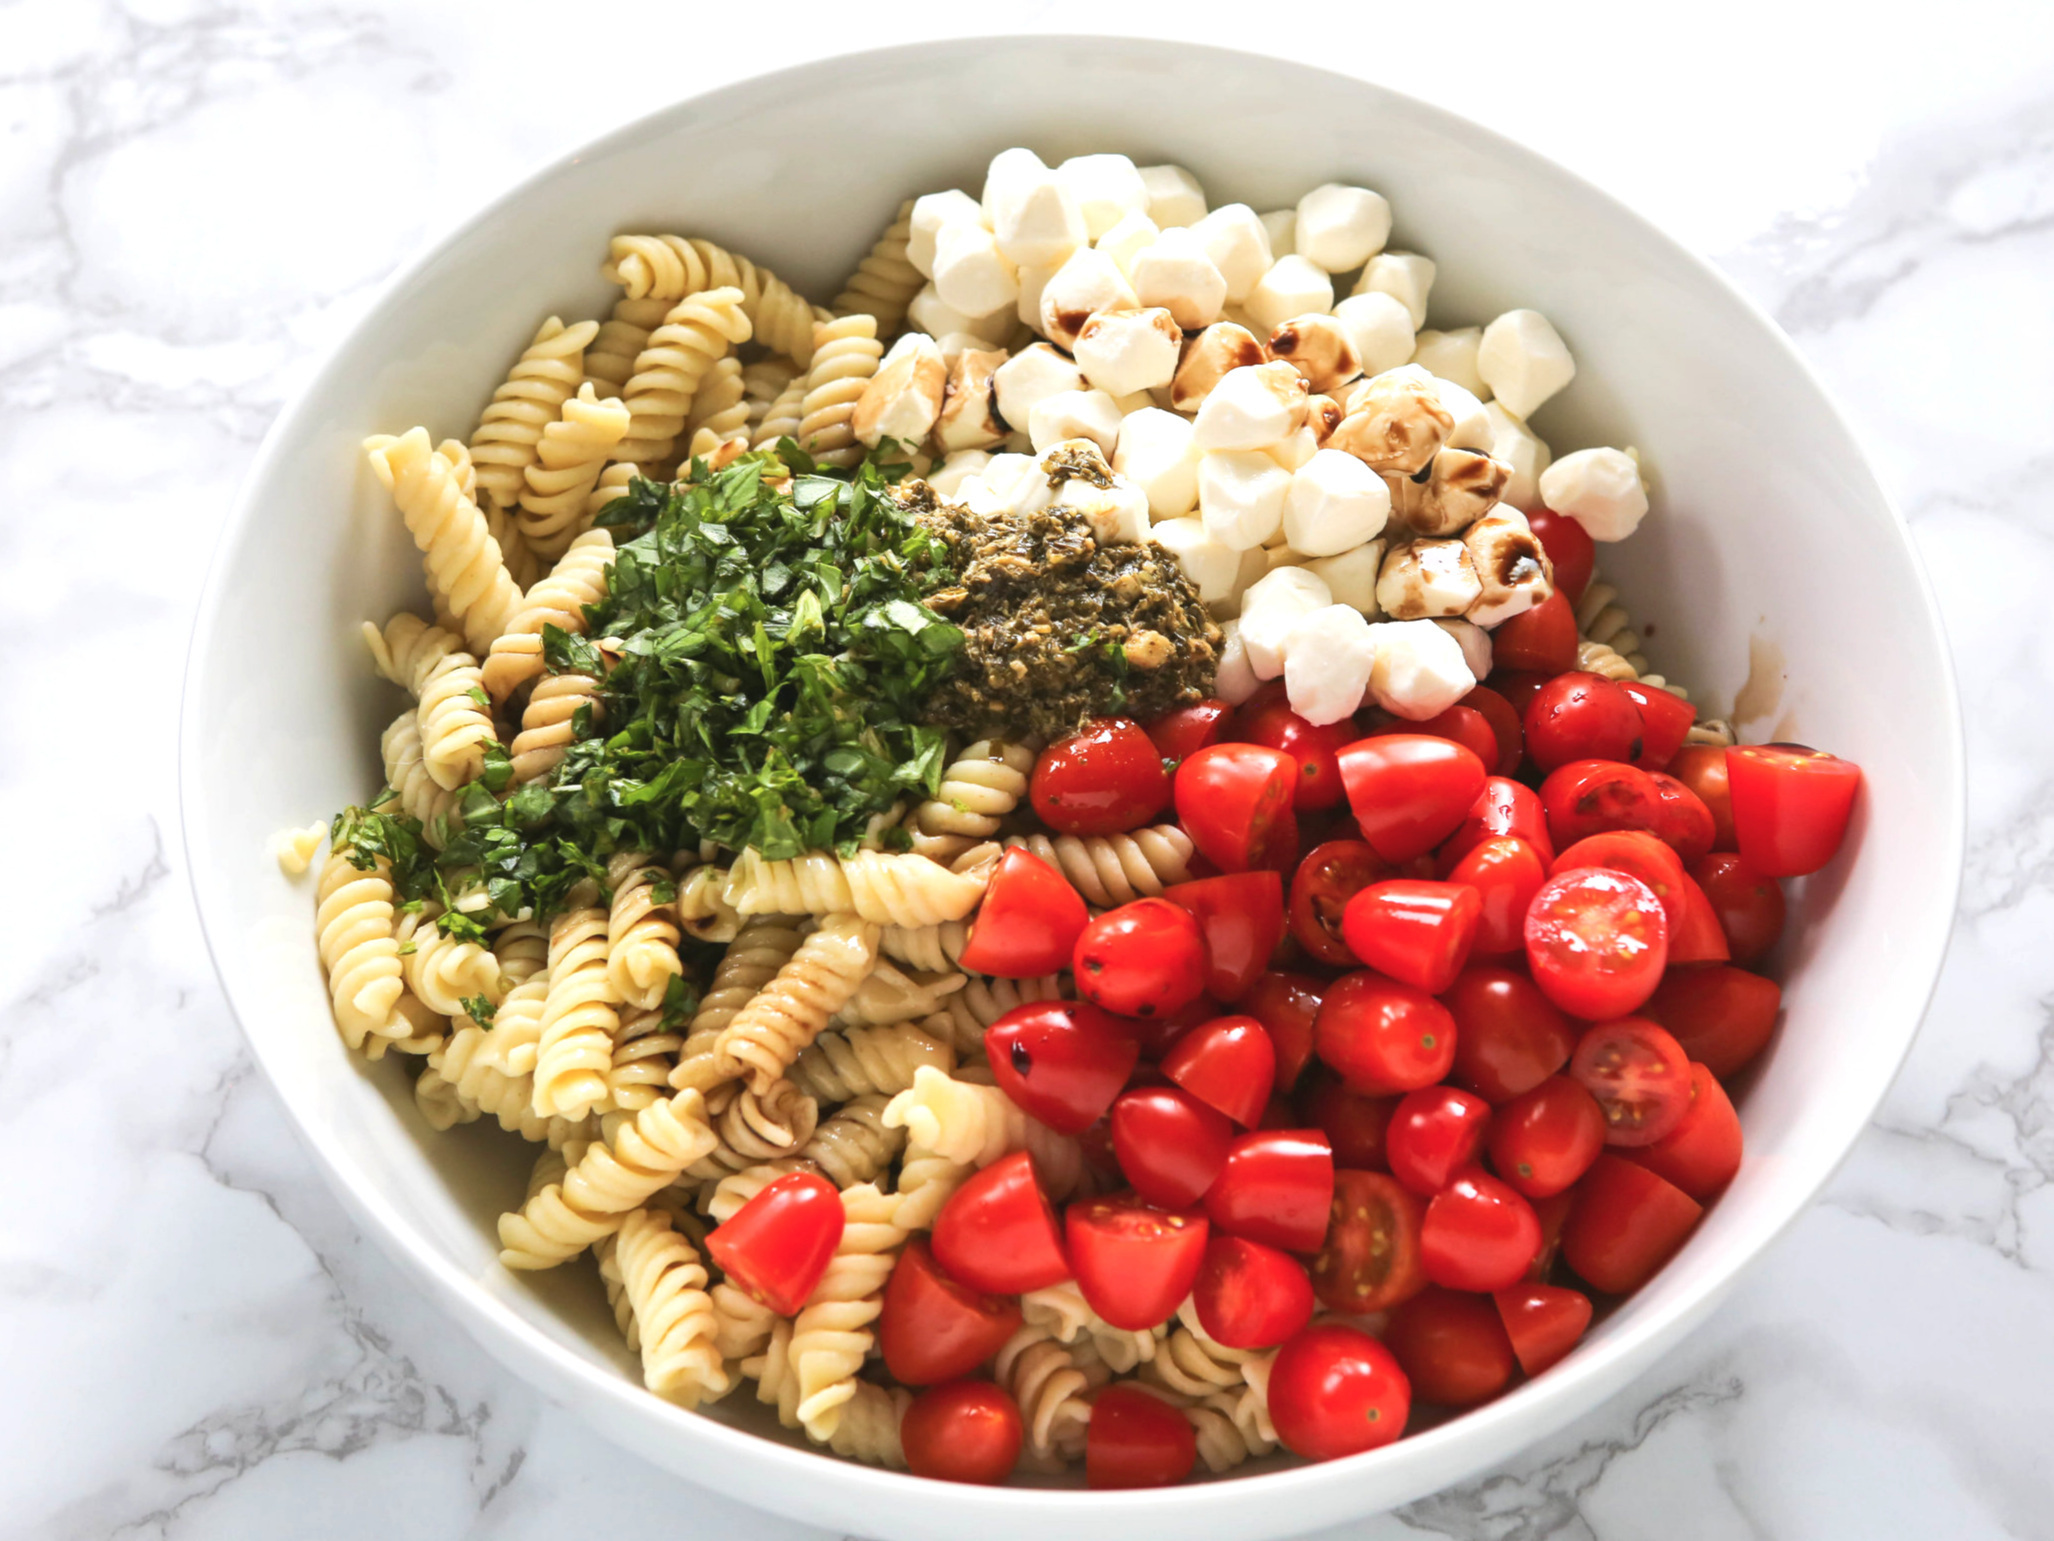 caprese pasta salad ingredients in mixing bowl